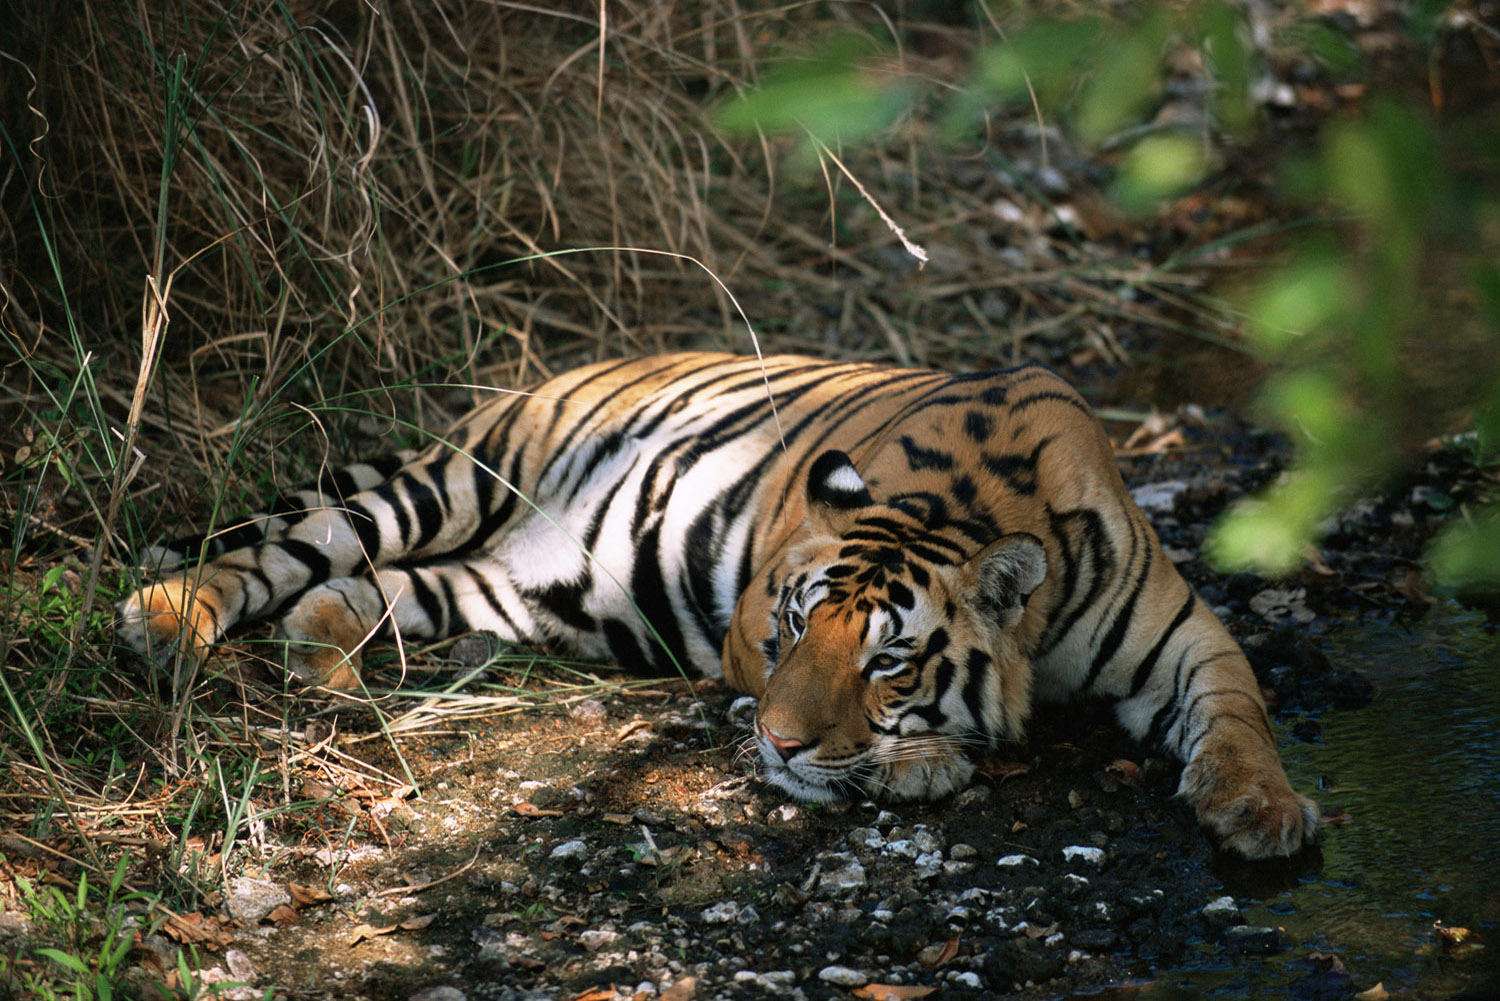 Bengal tiger resting by stream, Kanha National Park, Madhya Pradesh, India